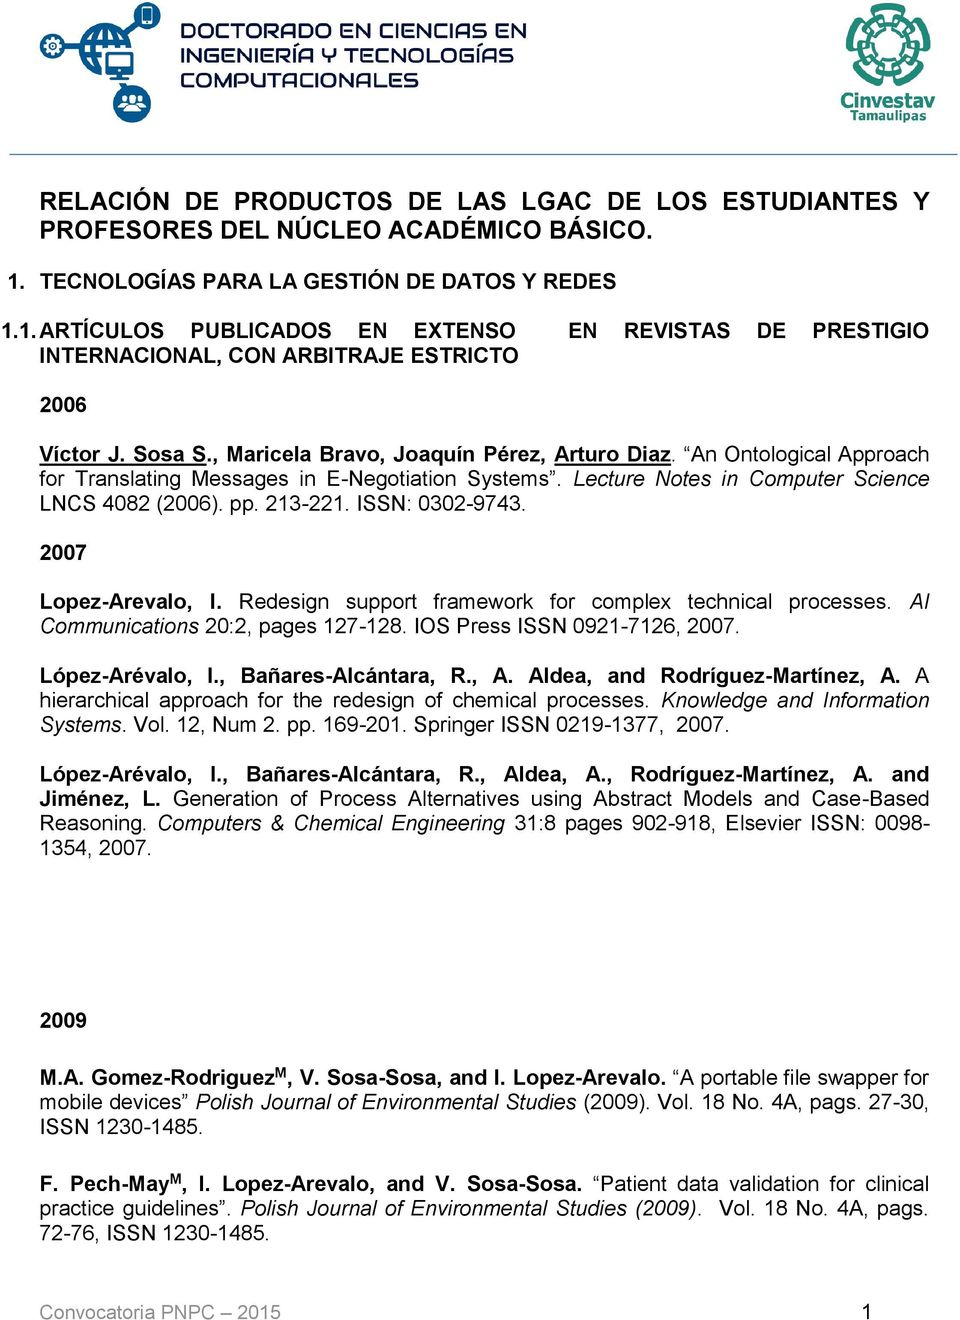 , Maricela Bravo, Joaquín Pérez, Arturo Diaz. An Ontological Approach for Translating Messages in E-Negotiation Systems. Lecture Notes in Computer Science LNCS 4082 (2006). pp. 213-221.